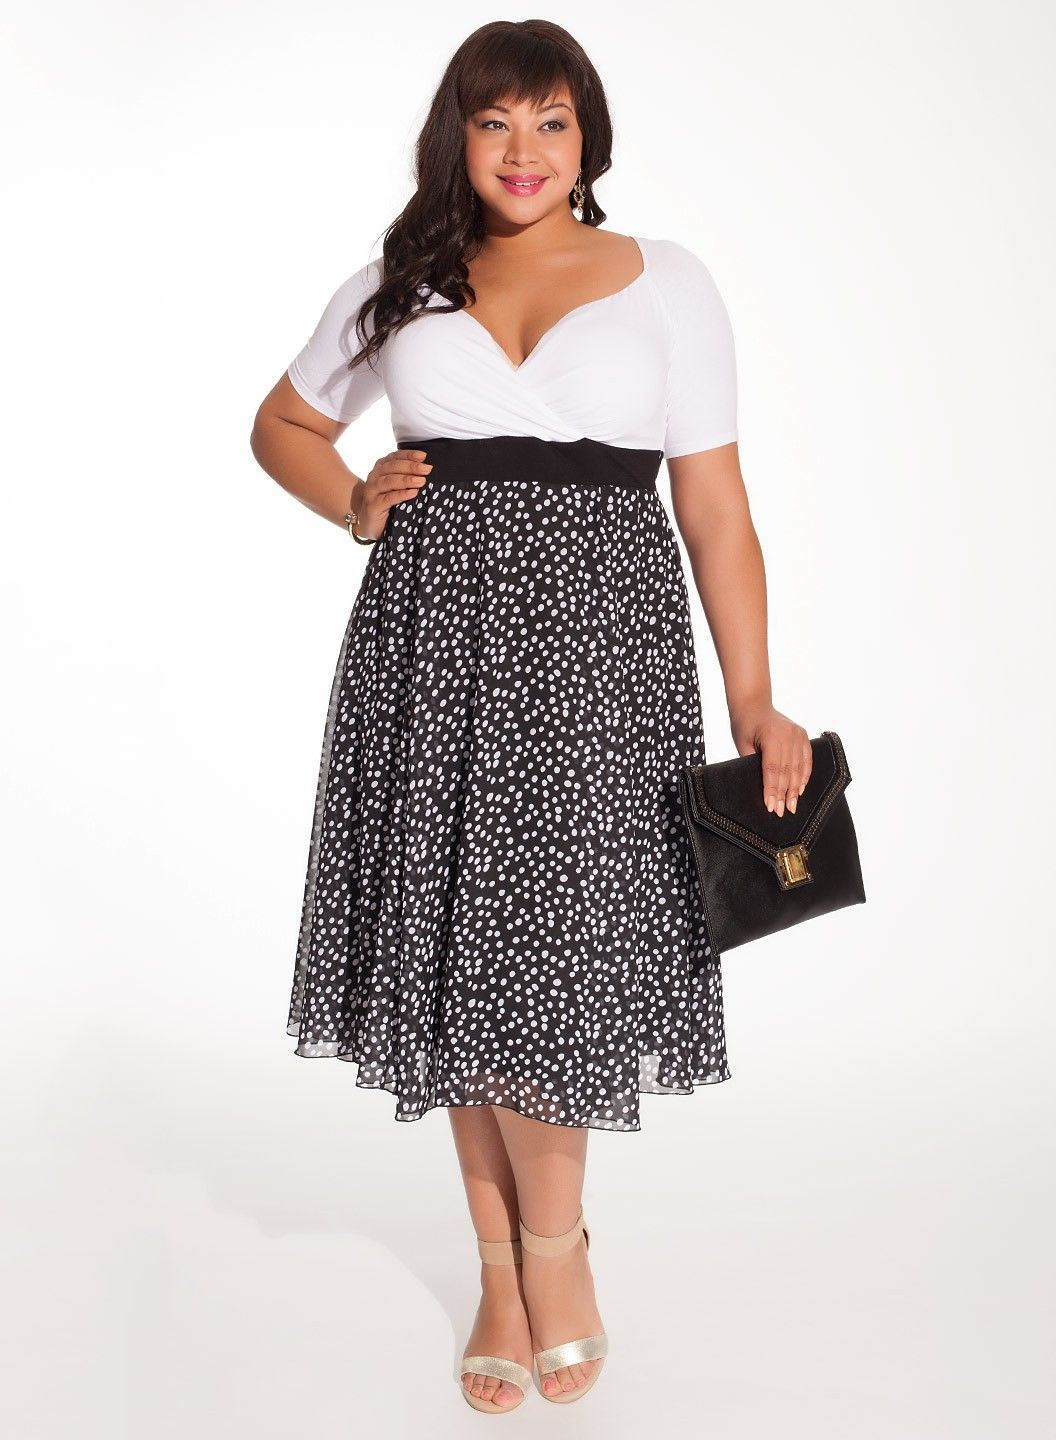 Why The Plus Size Fit And Flare Dress Is So Important To The History